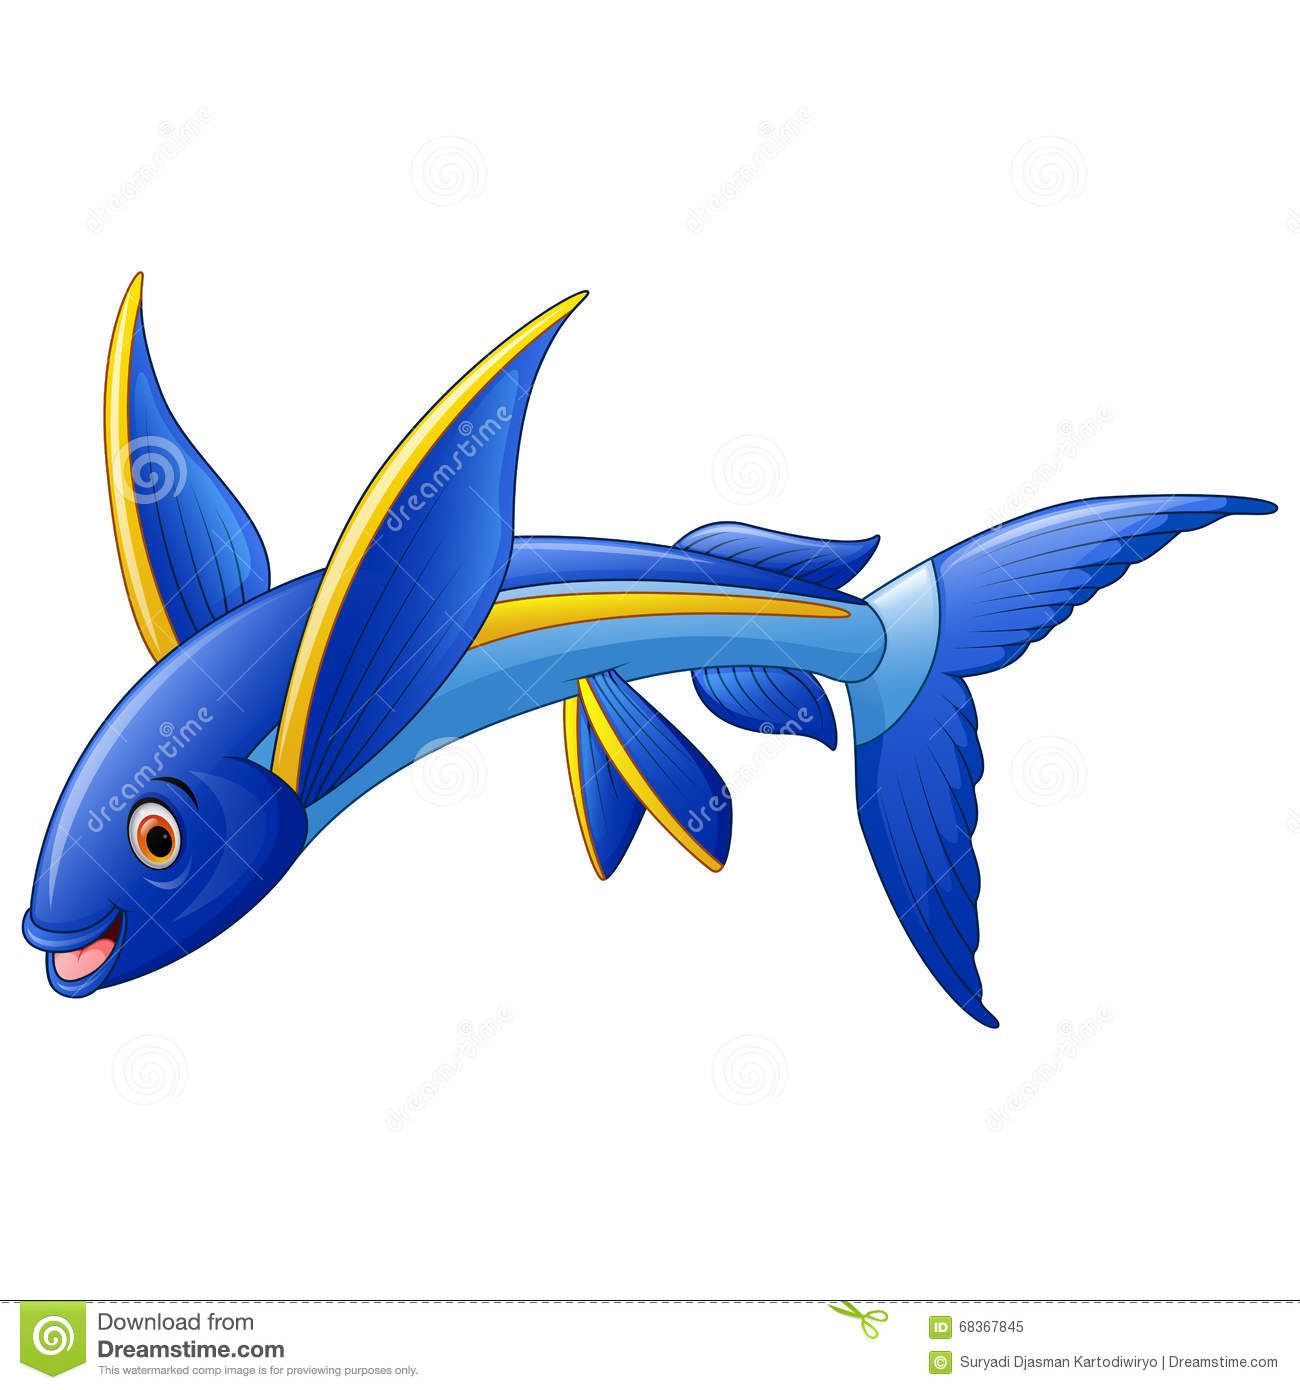 Flying fish cartoon character stock illustration image for Flying fish images